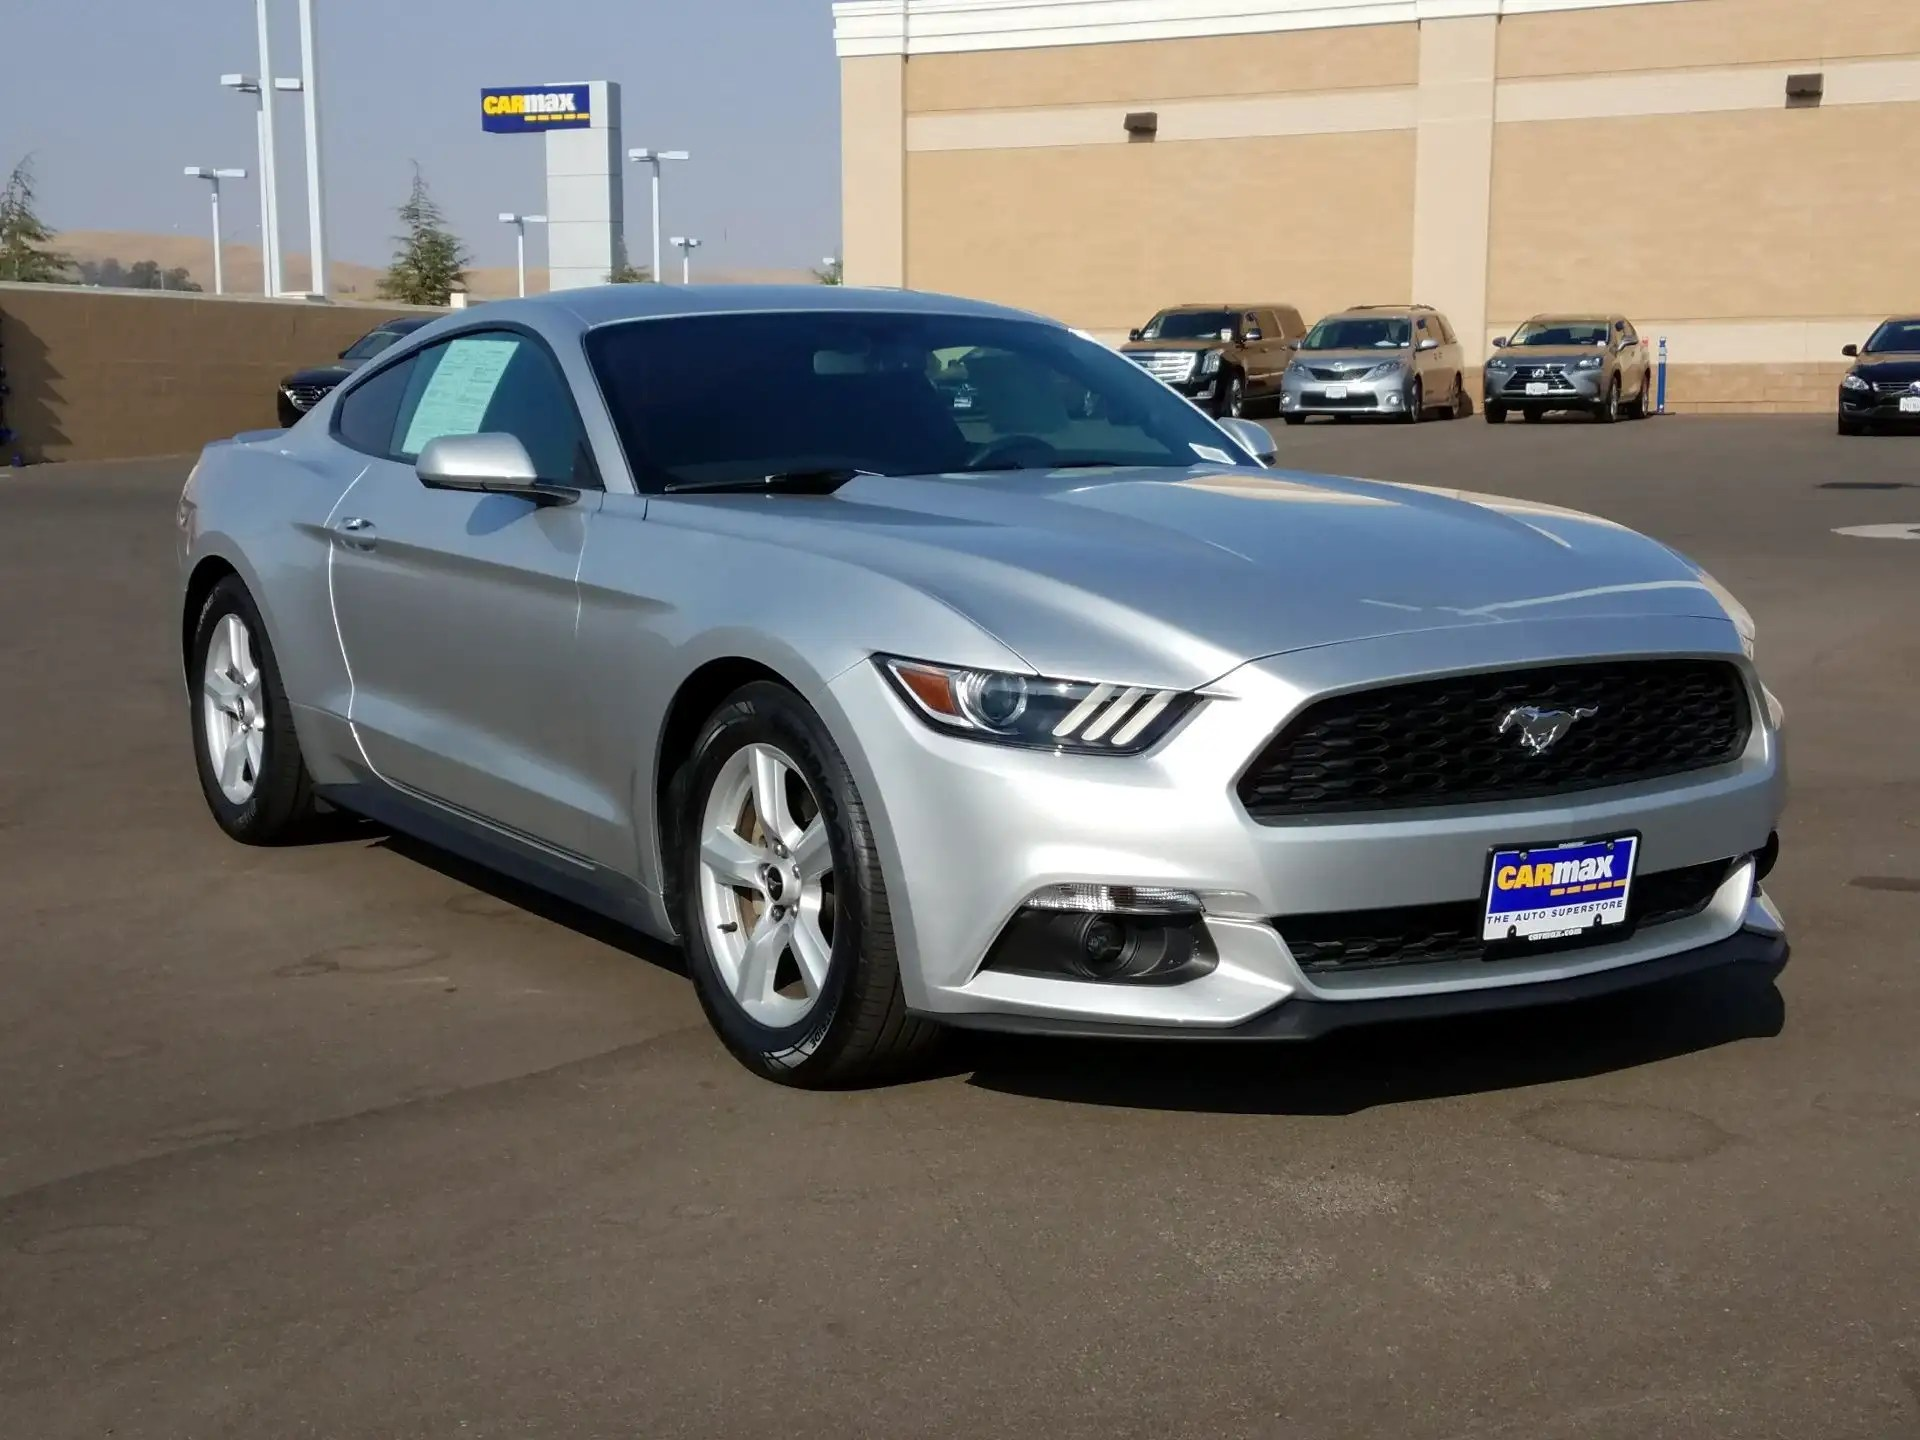 Used Ford Mustang 2015 Near You   CarMax 2015 Ford Mustang EcoBoost